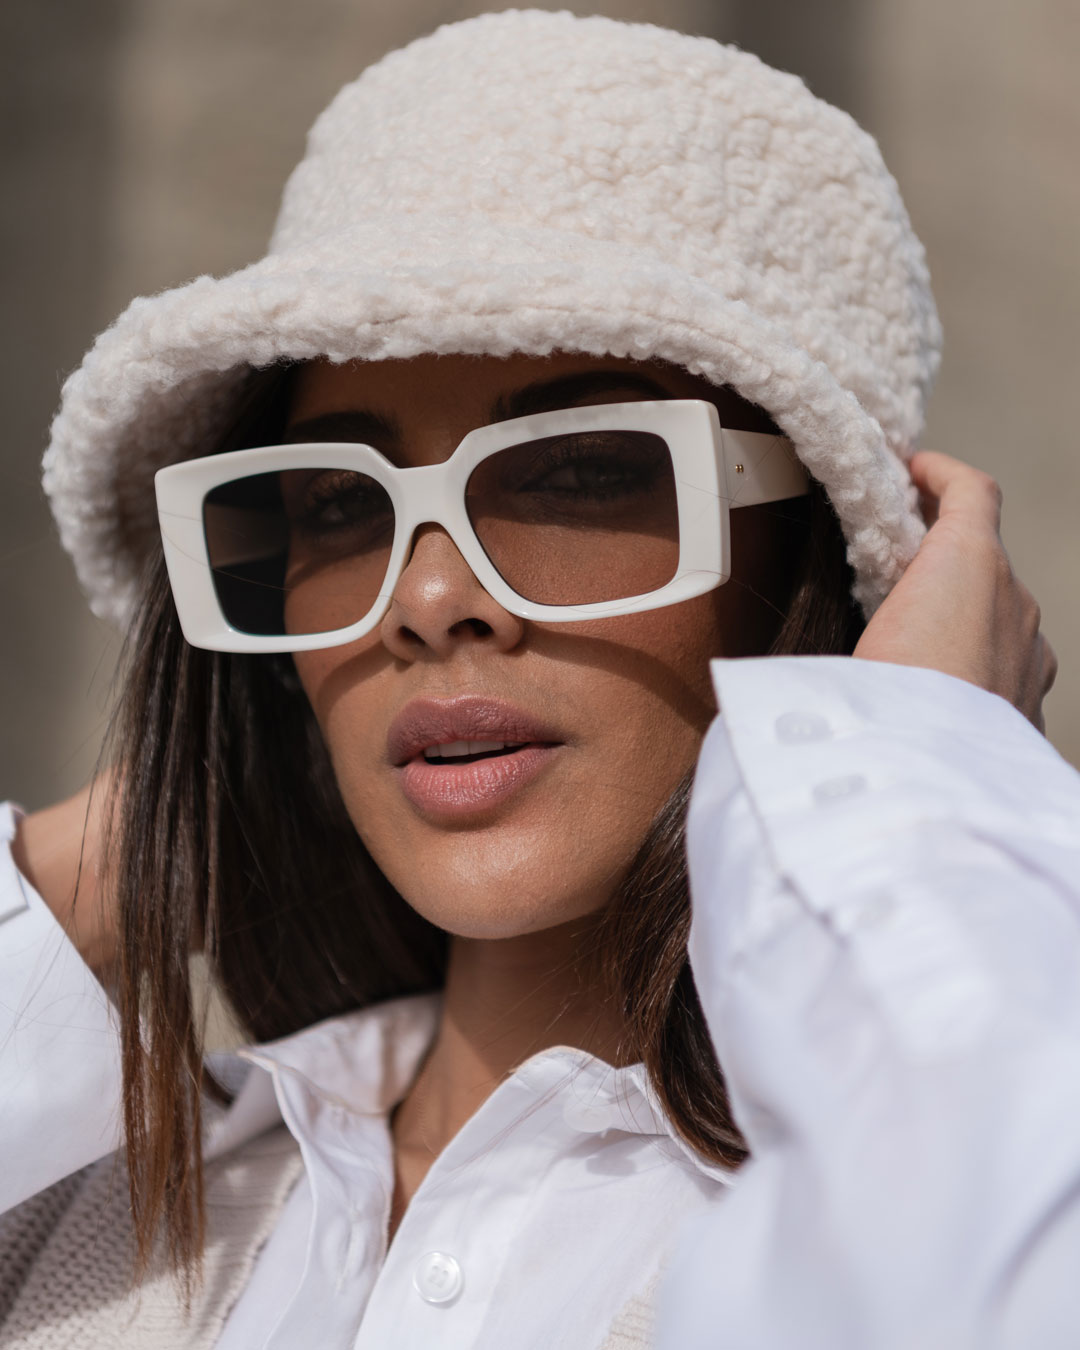 Sunglasses with a rectangular shape worn by a young woman wearing a white hat.